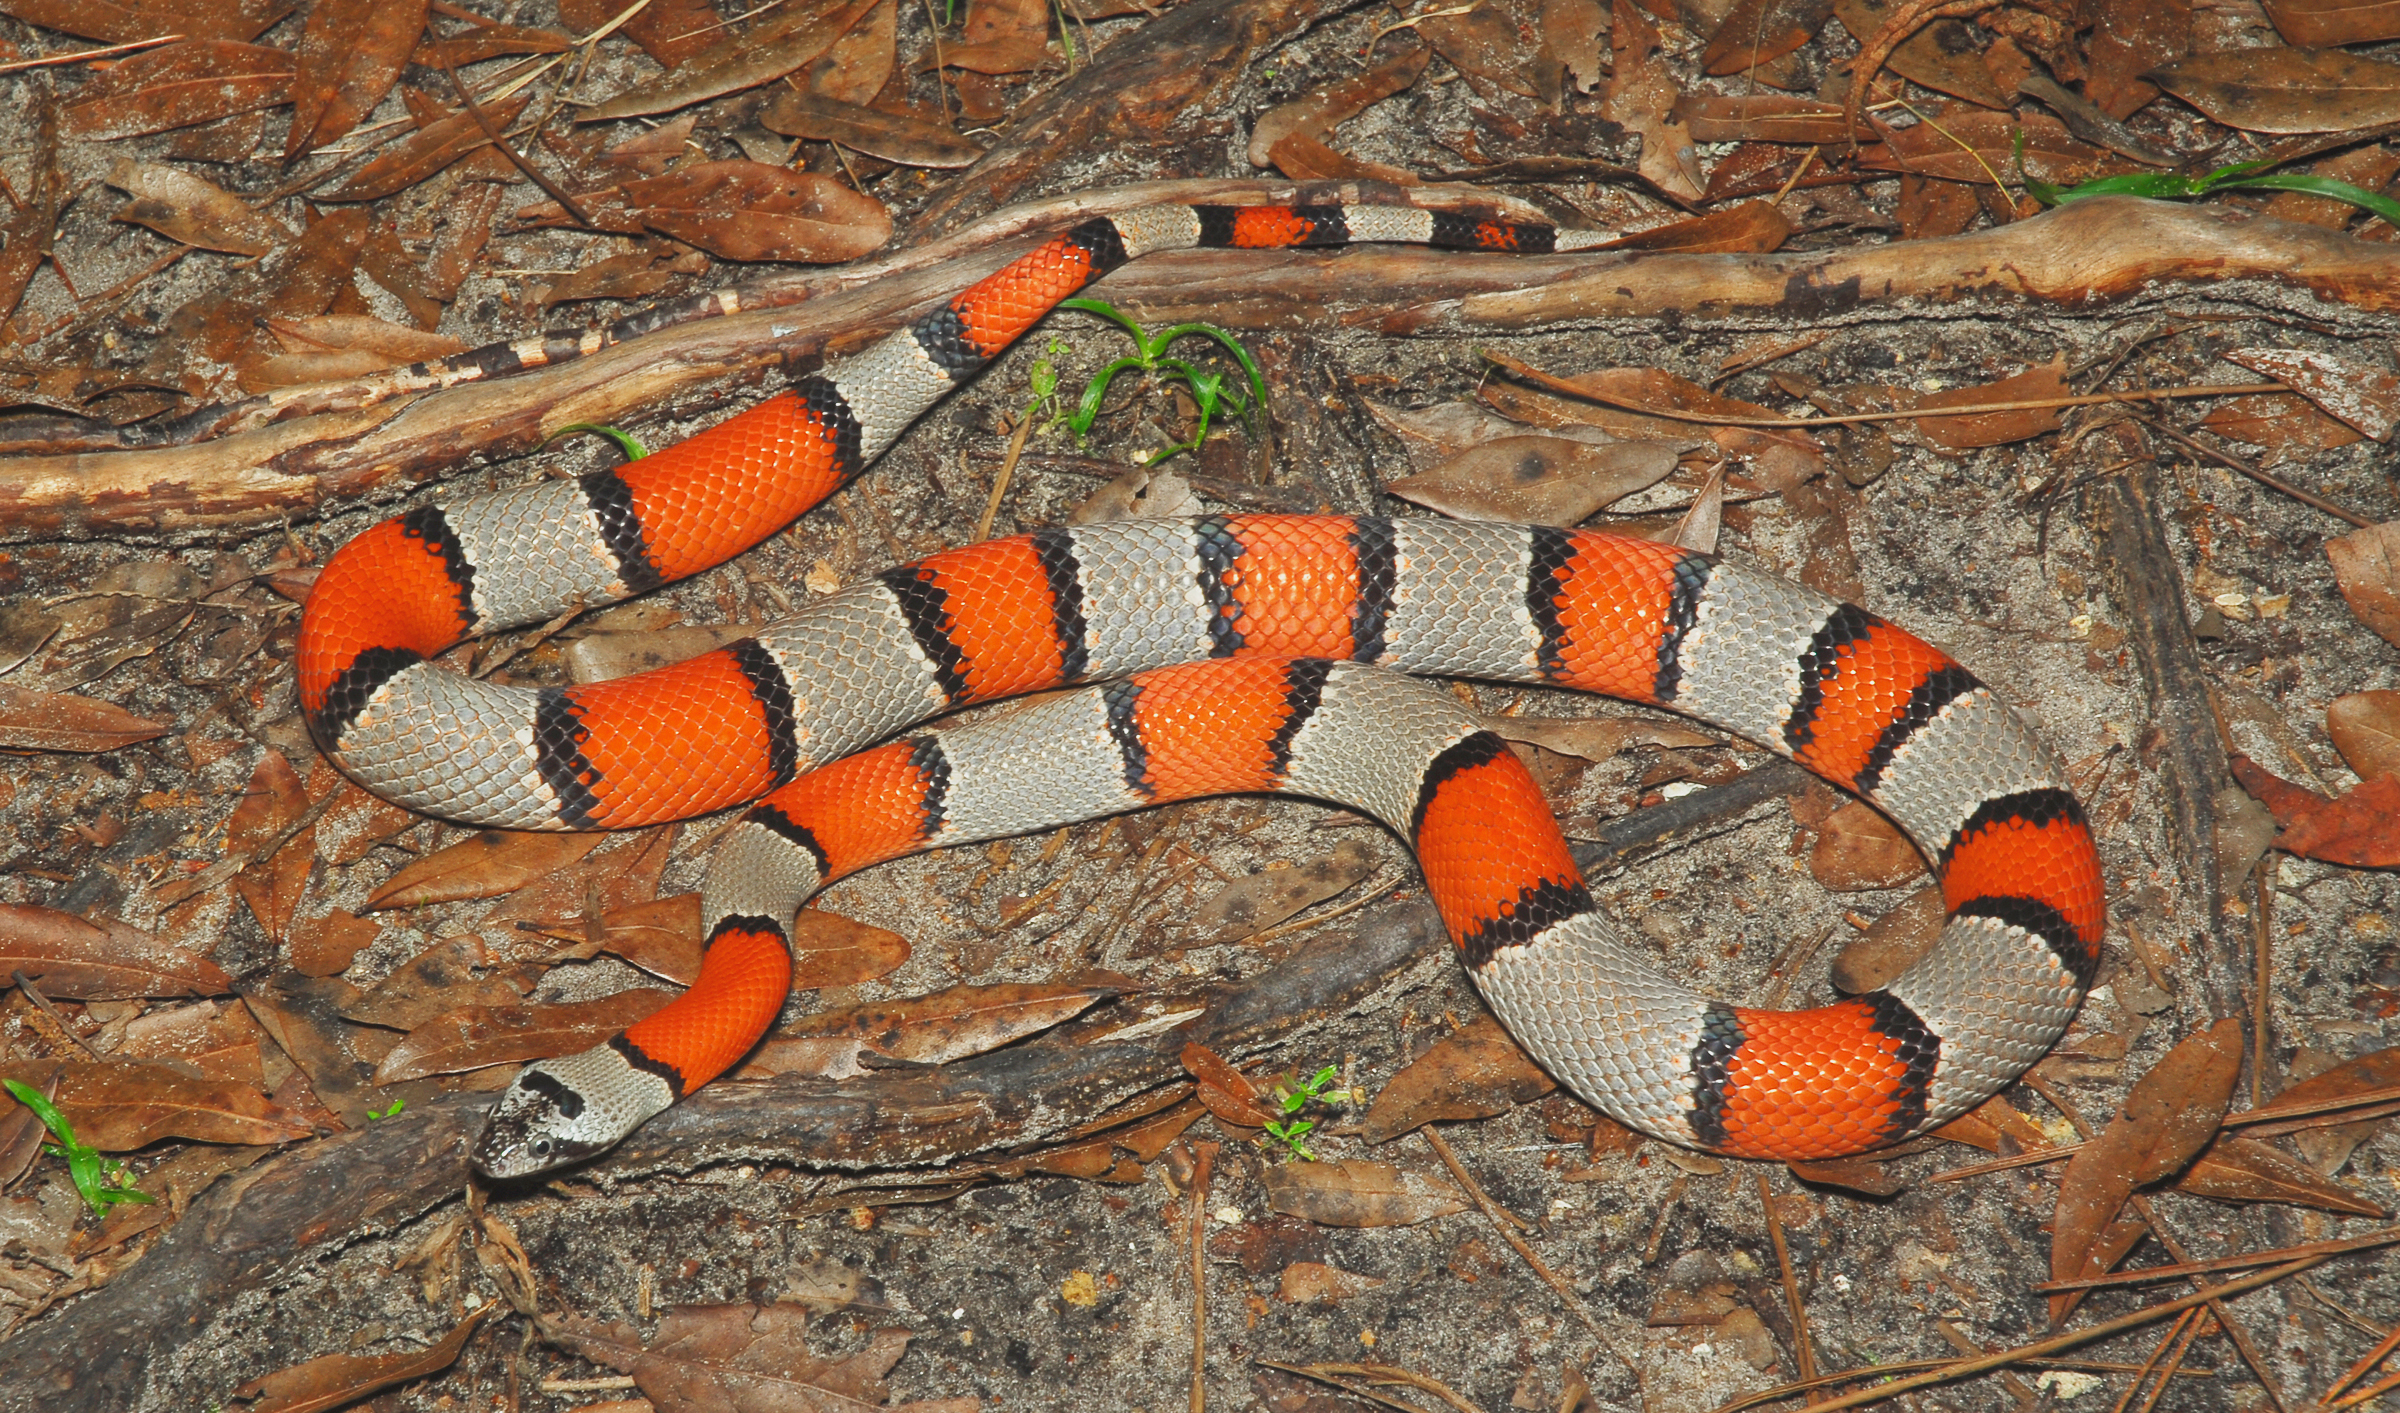 Lampropeltis alterna